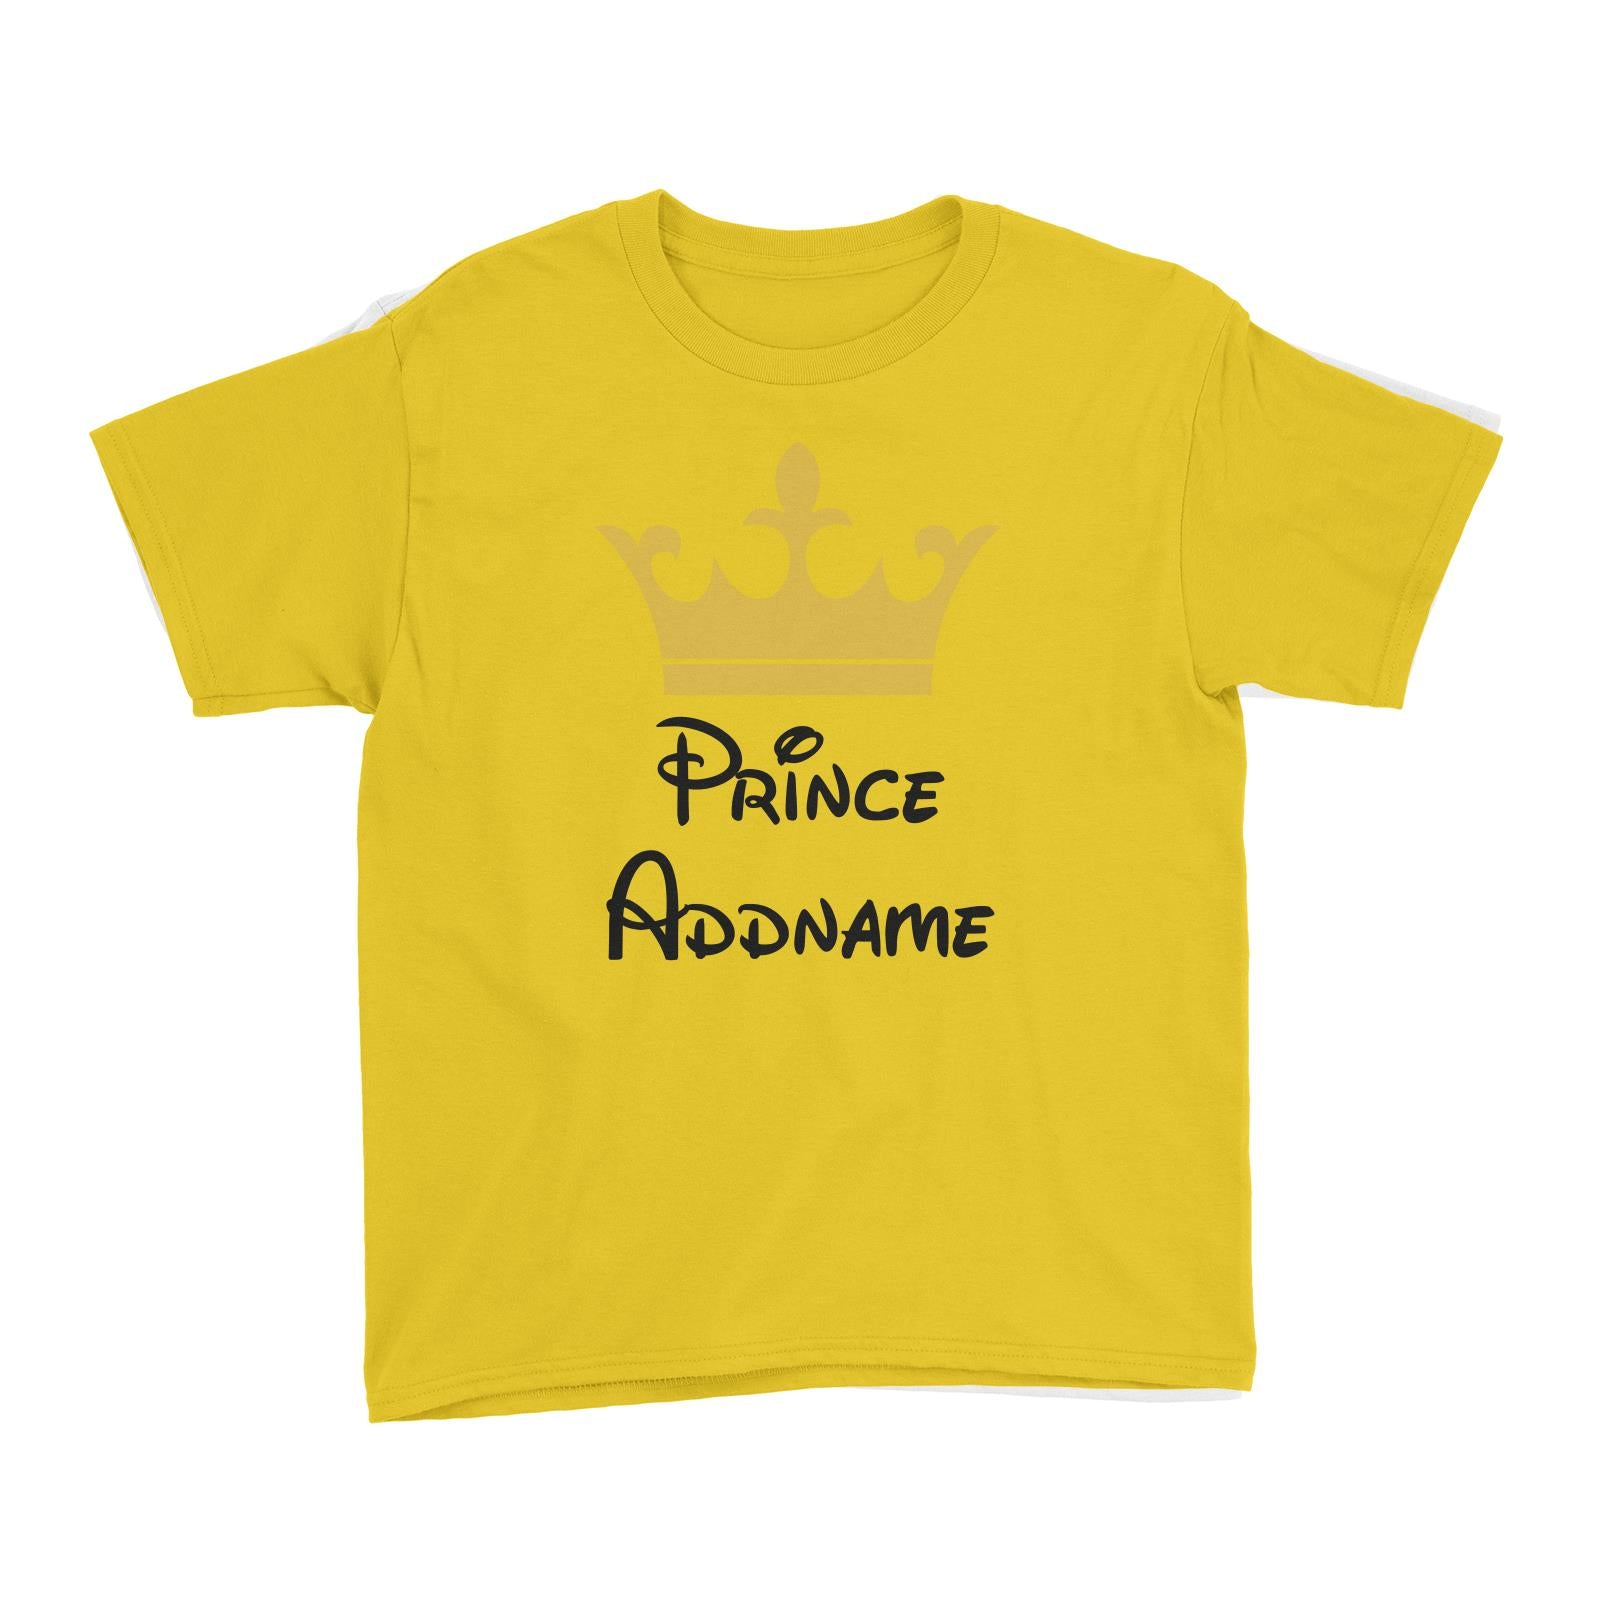 Royal Prince with Crown Addname Kid's T-Shirt